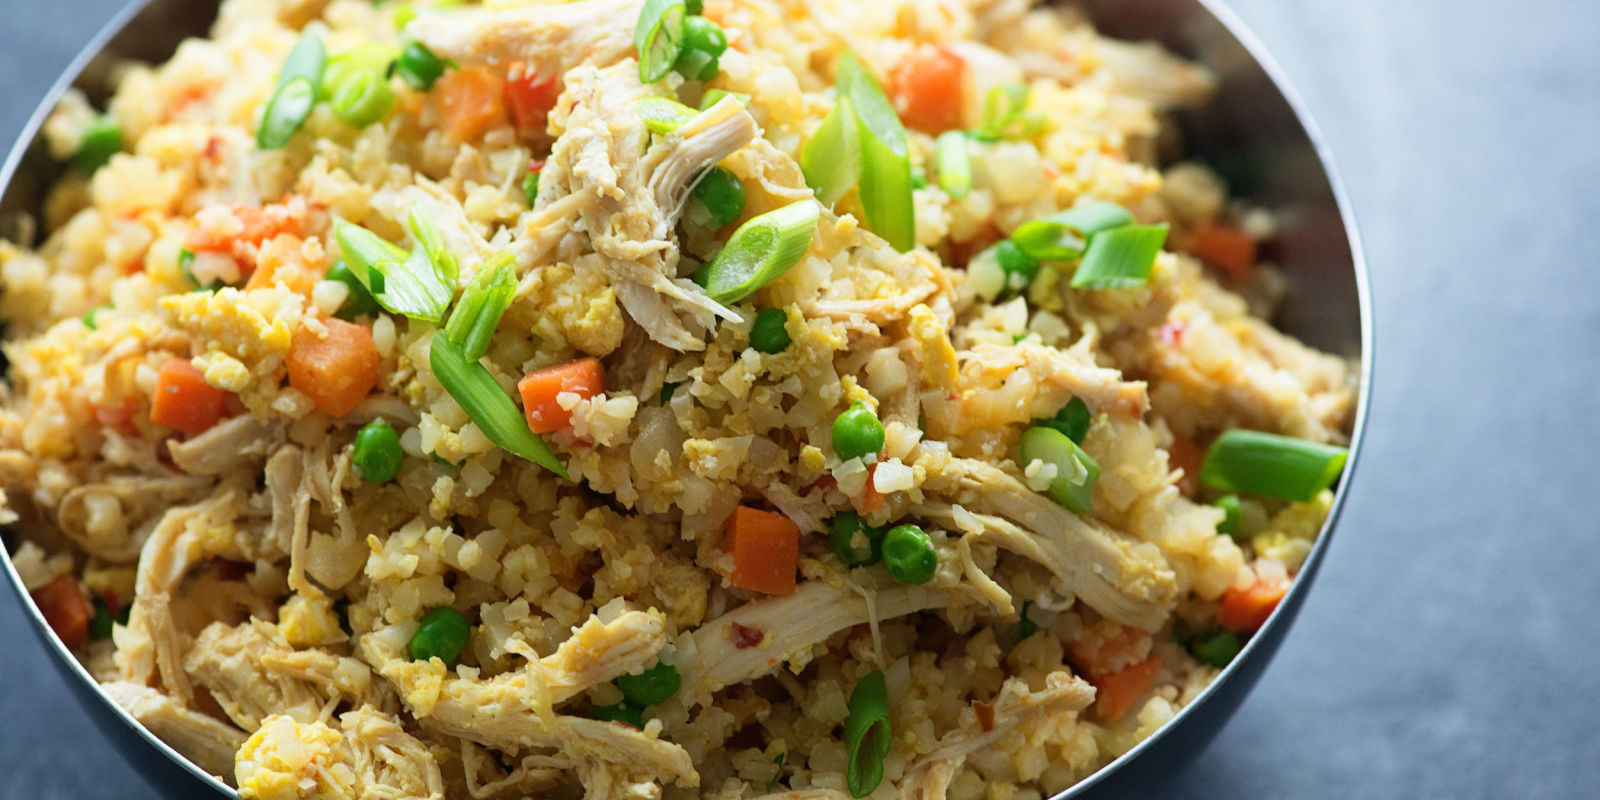 Recipes With Cauliflower Rice  Best Chicken Fried Cauliflower Rice Recipe How To Make